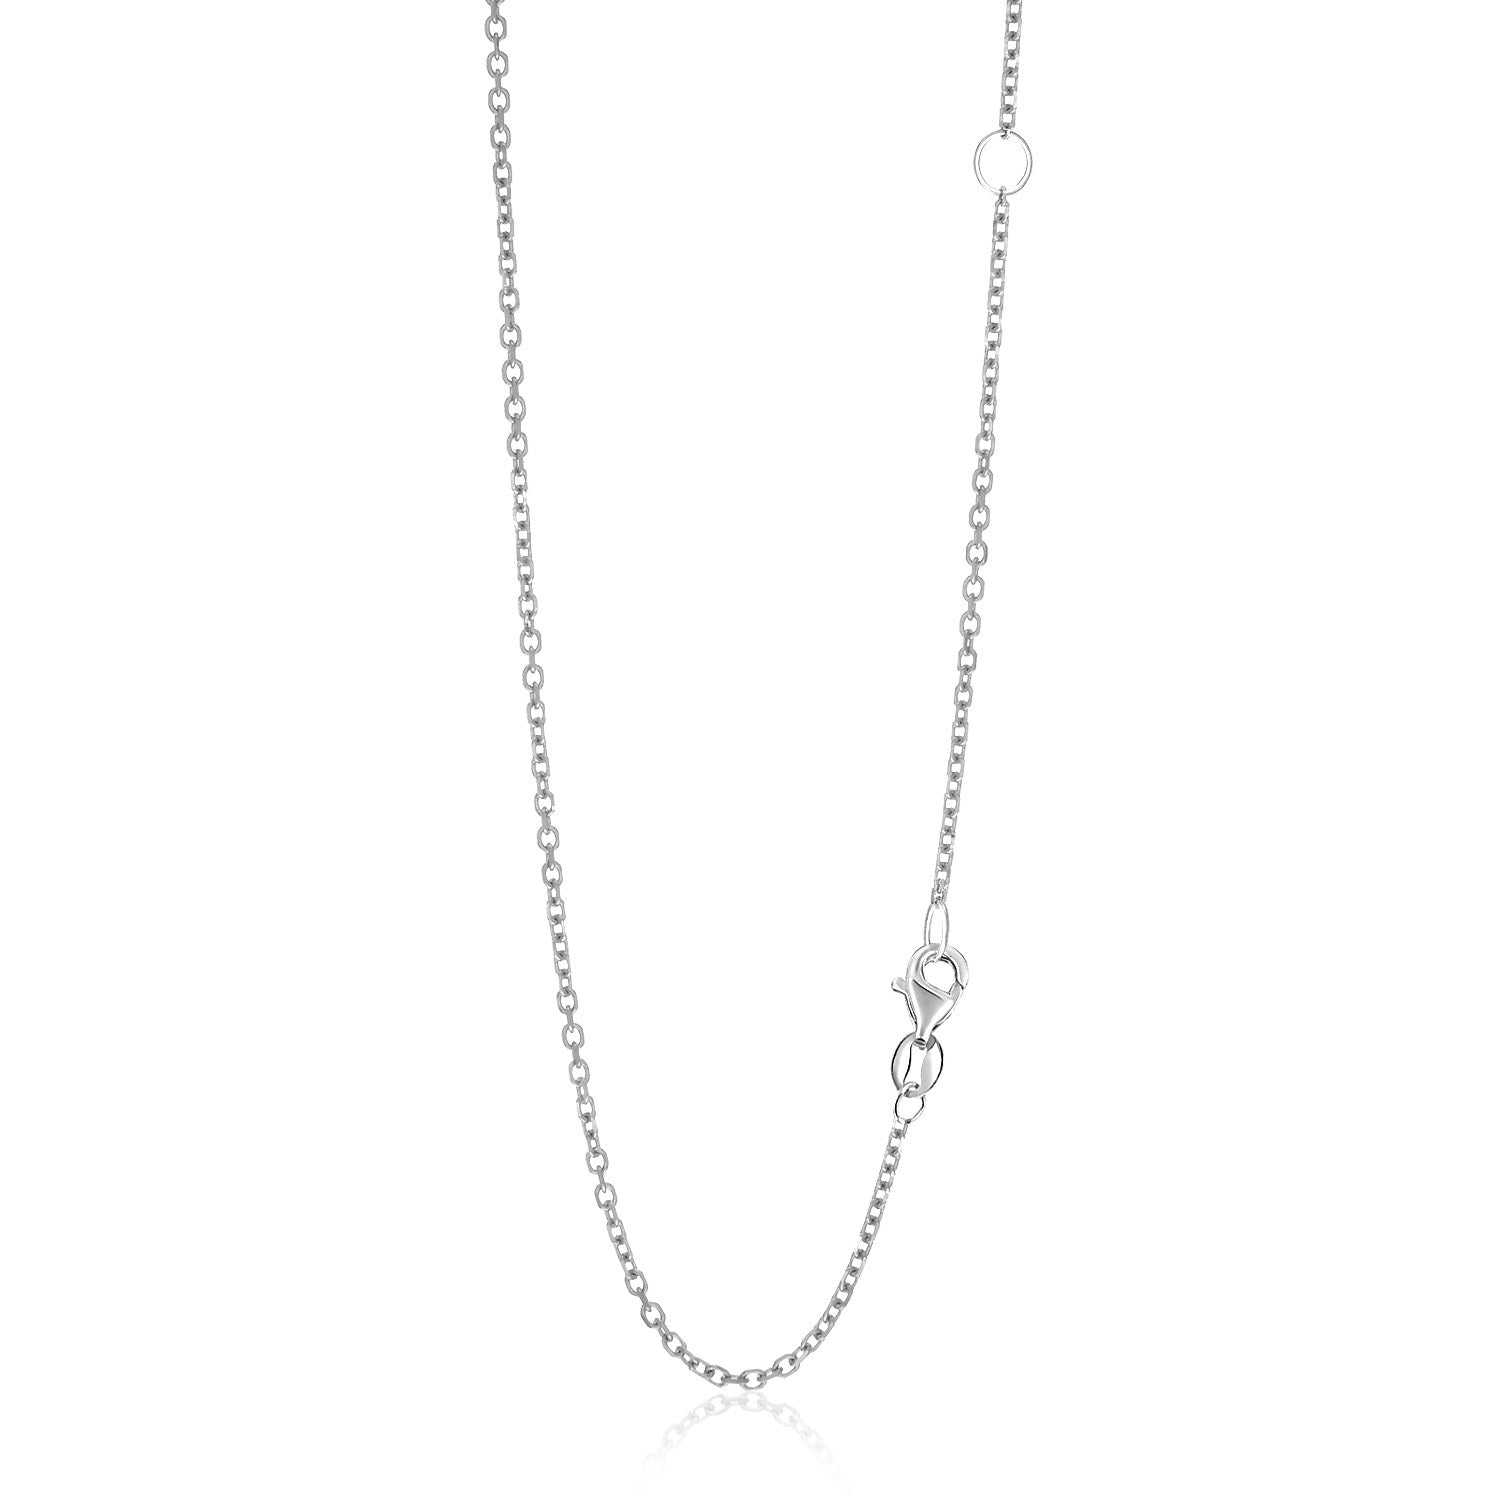 1.5mm 14K White Gold Adjustable Cable Chain